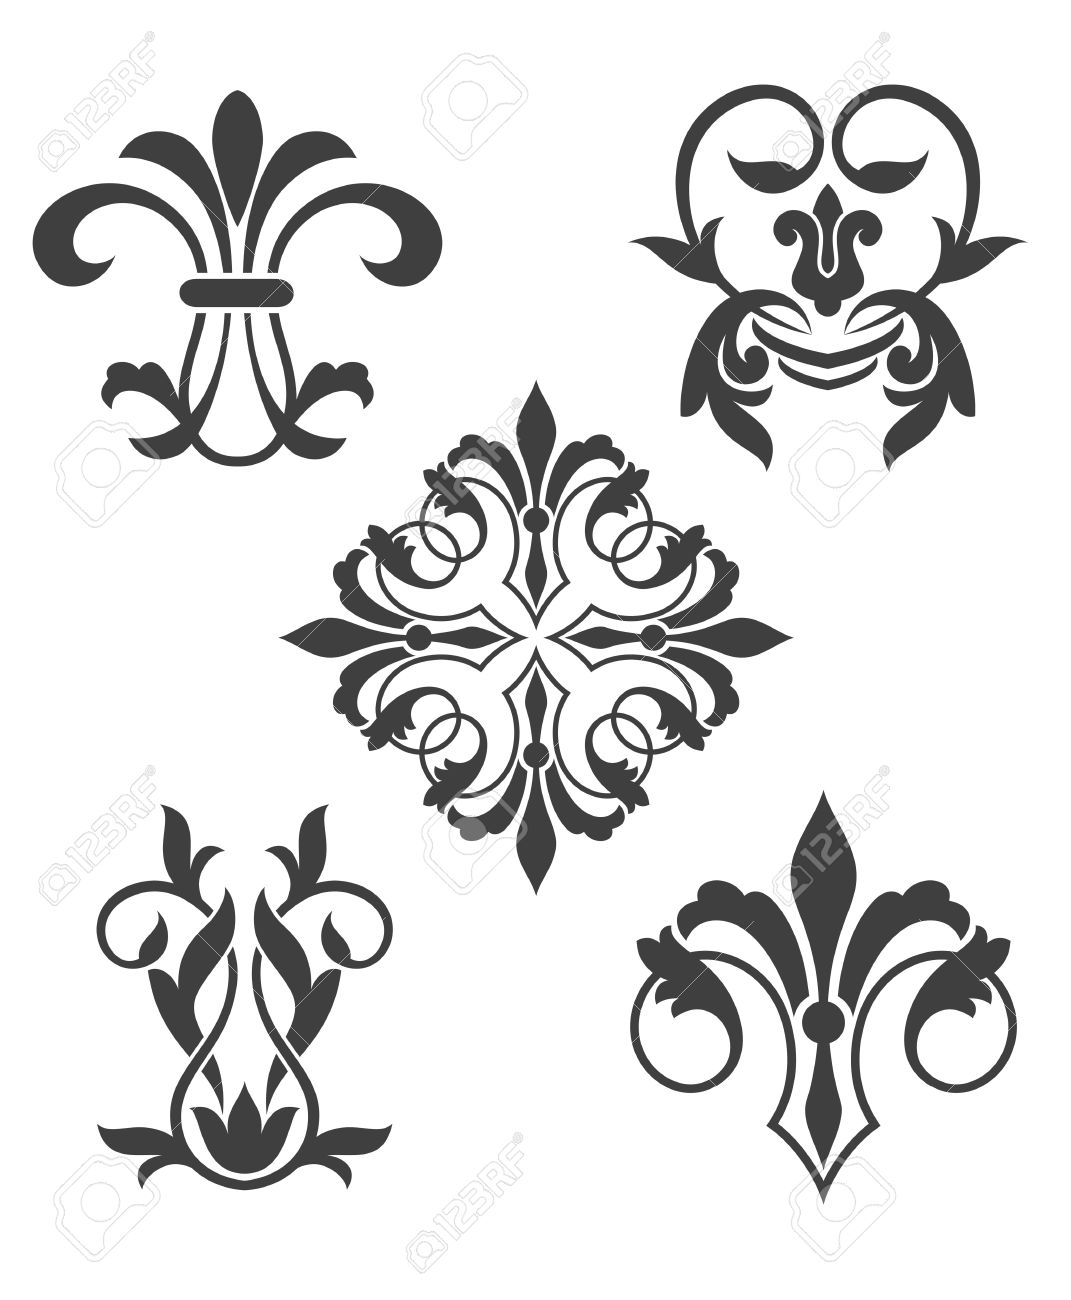 Antique Vintage Floral Patterns Isolated On White Stock Vector